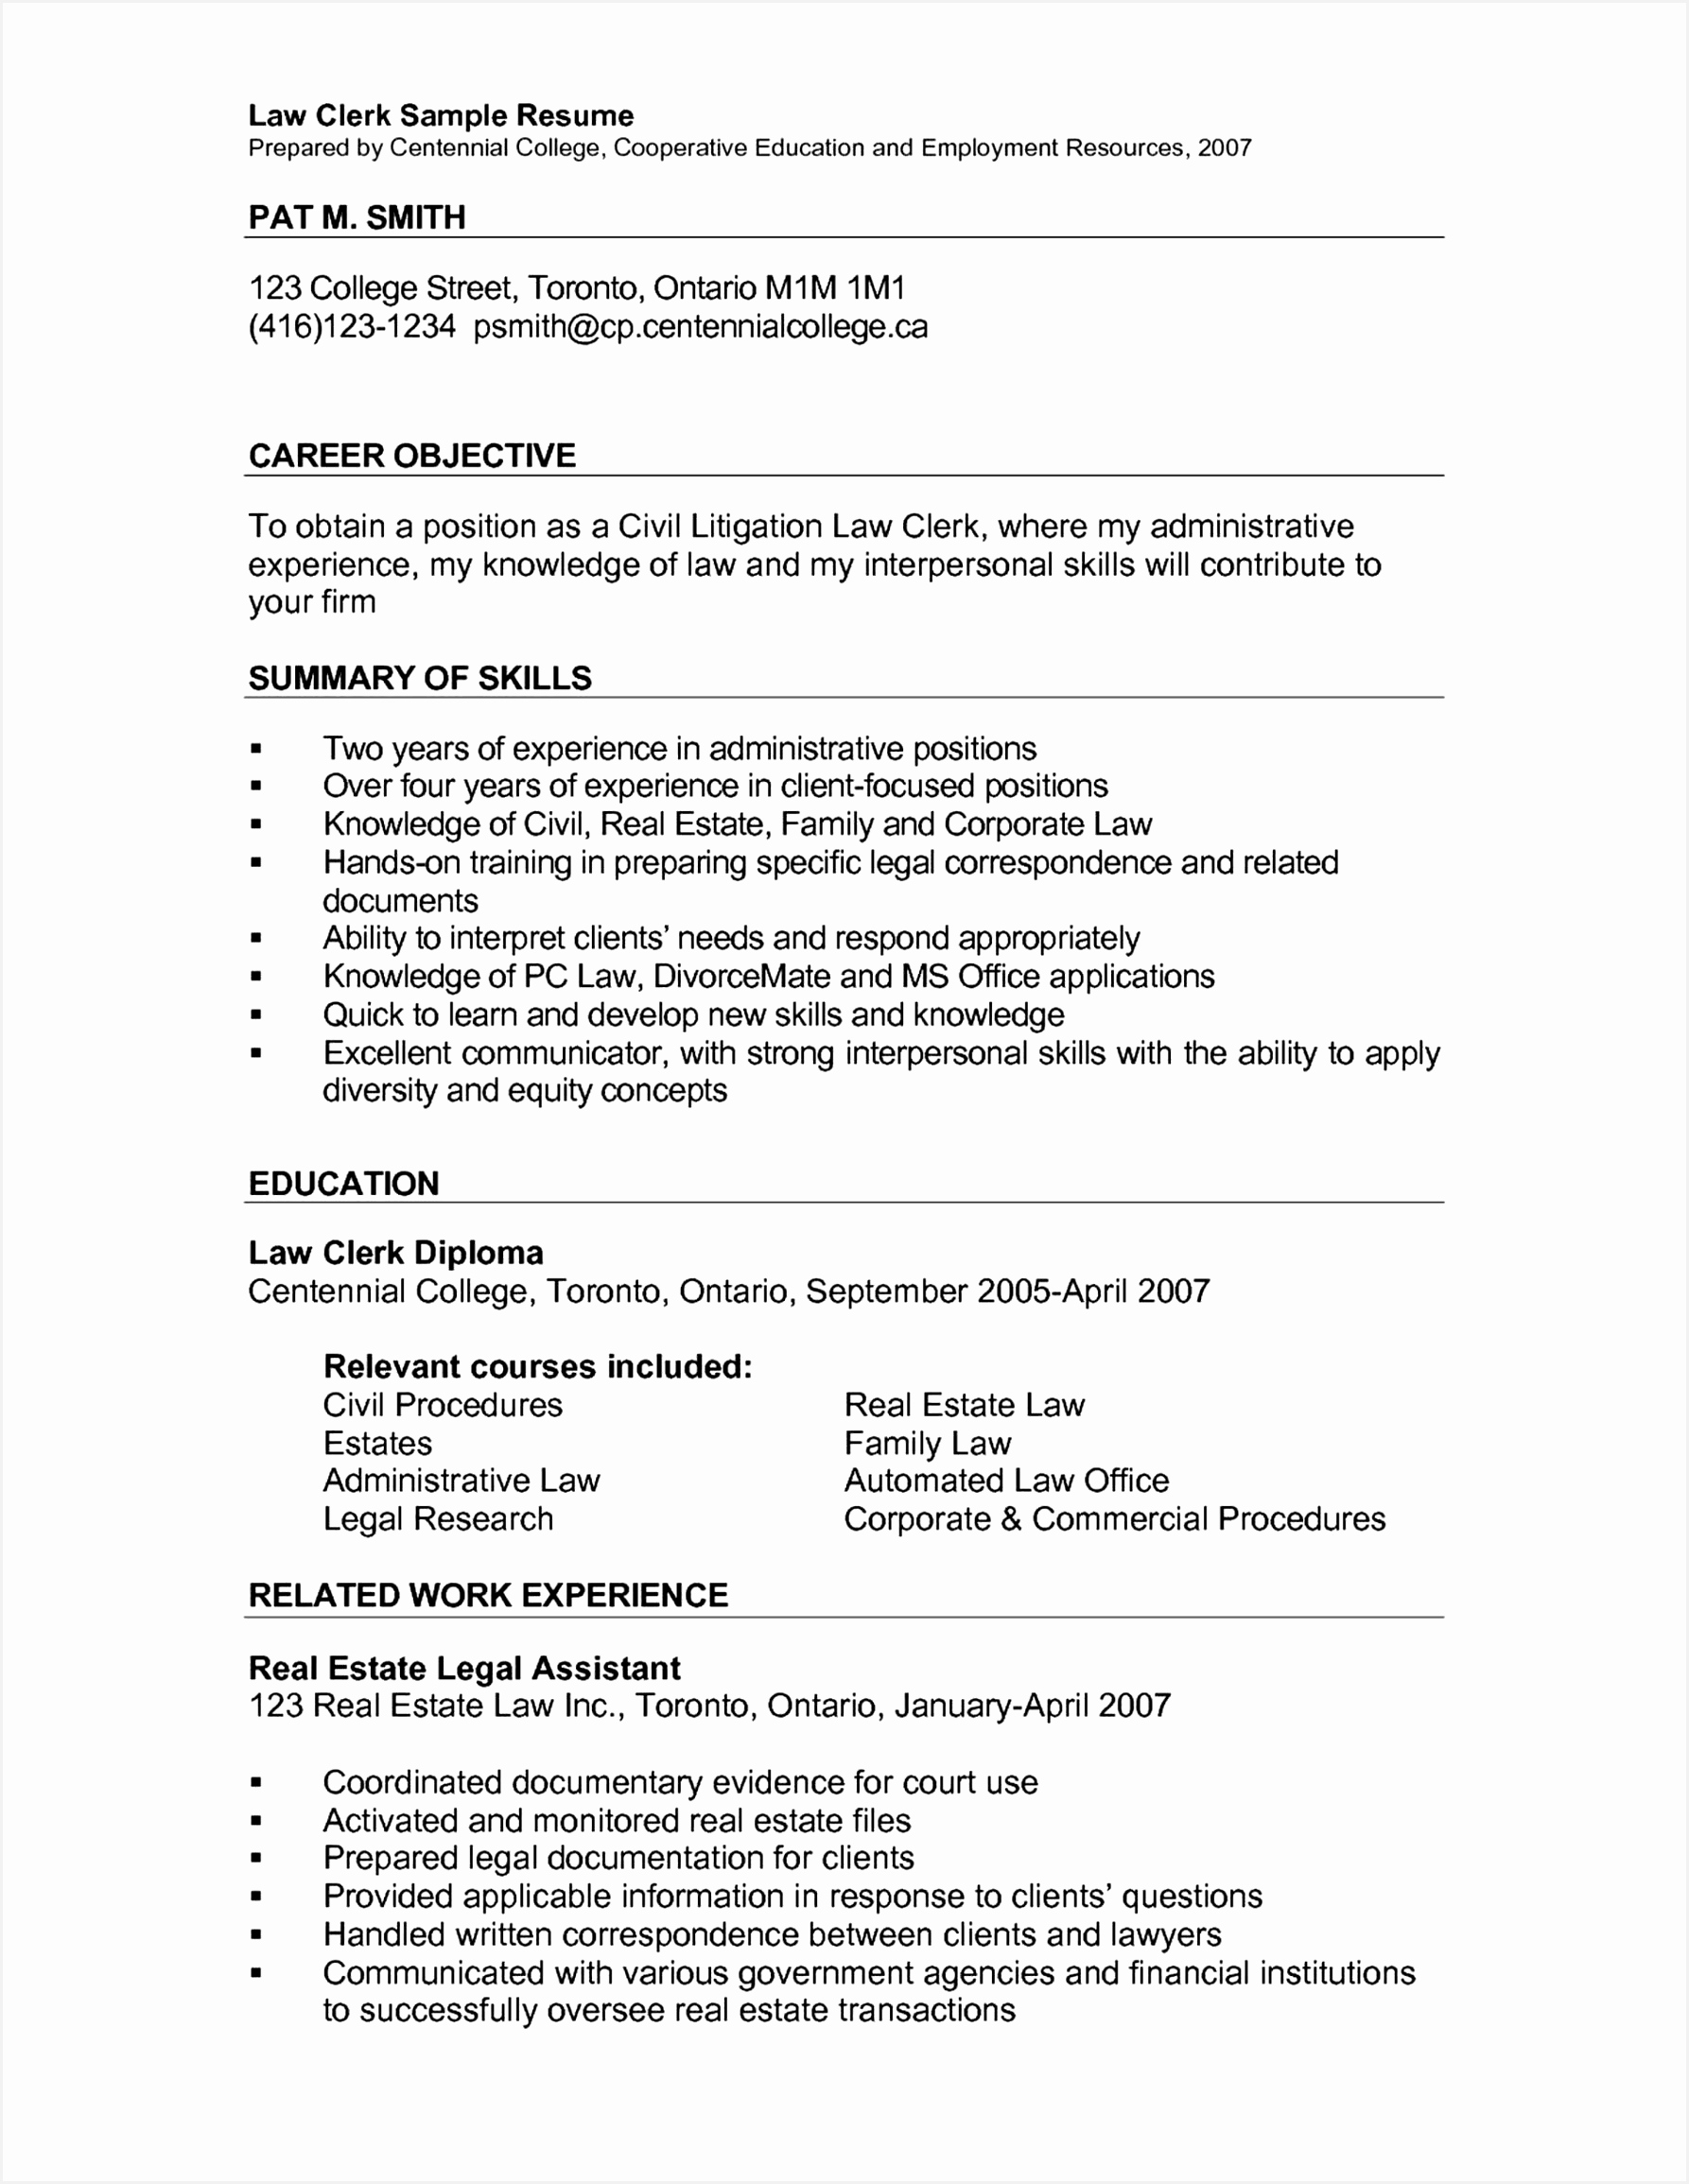 Sample Resumes for Lawyers Uthat Awesome Legal Resume Template Unique Law Student Resume Template Best Resume Of 4 Sample Resumes for Lawyers